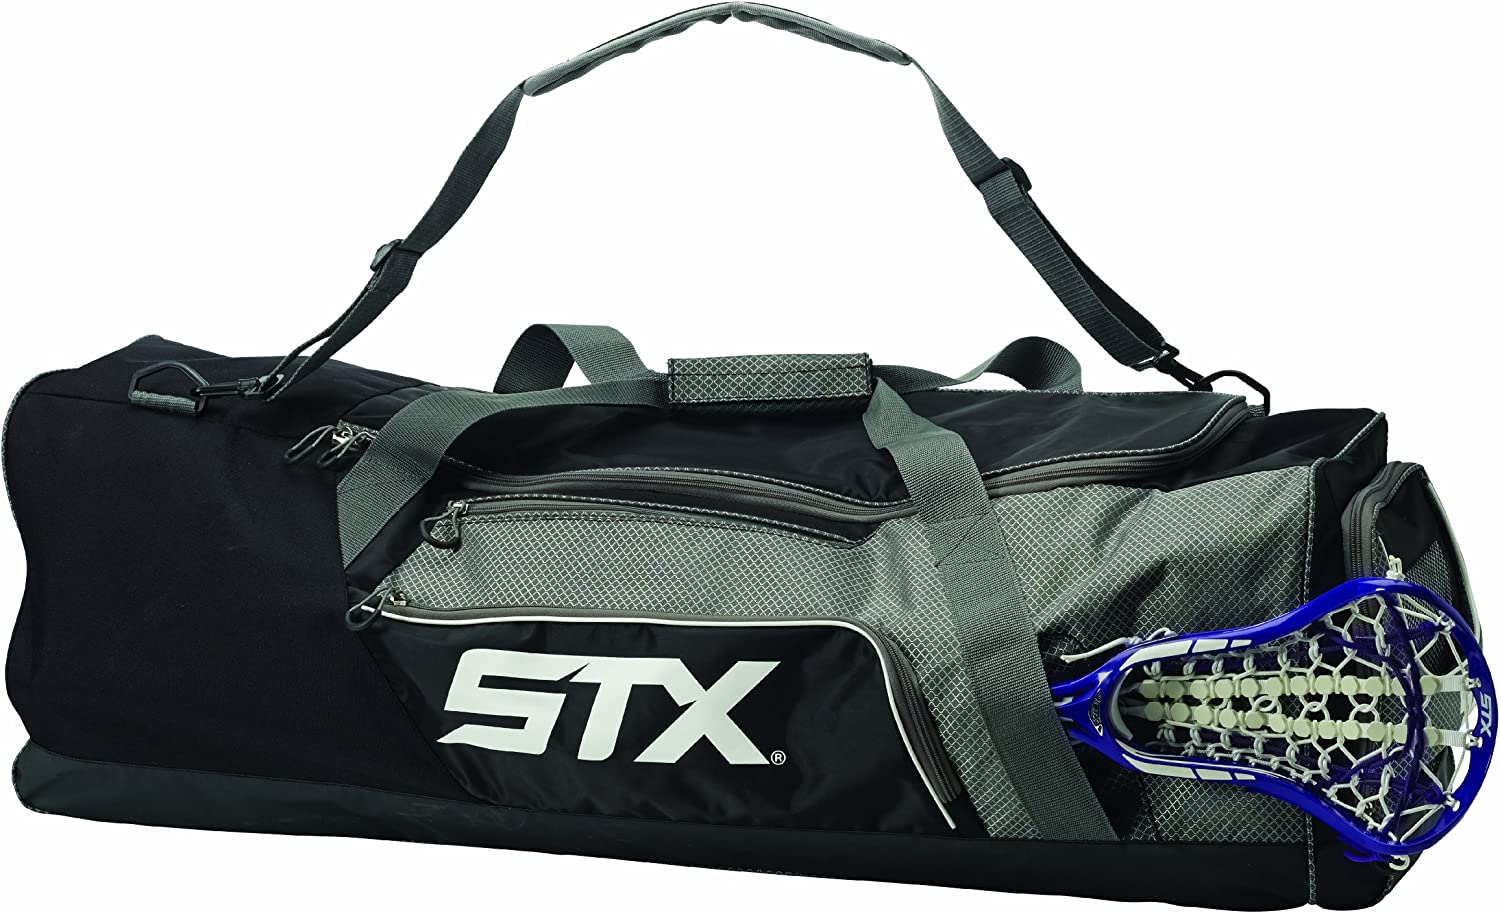 STX Lacrosse Challenger Lacrosse Equipment Bag : Sports & Outdoors